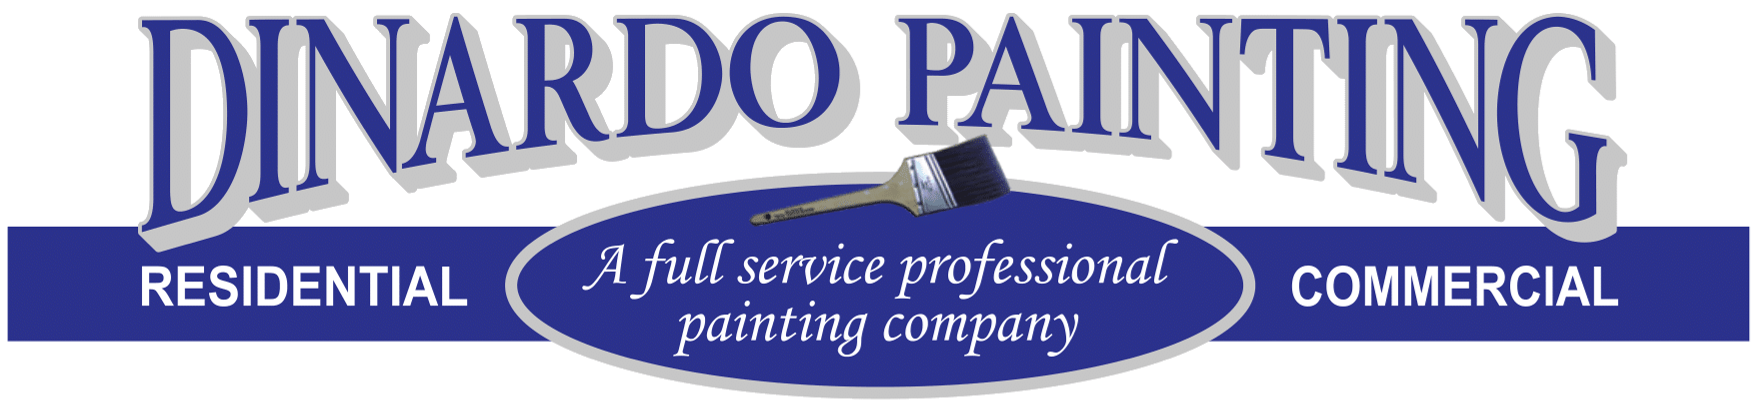 House painter clipart clip art library stock Painting Contractor Interiors & Exteriors | House Painter | New ... clip art library stock